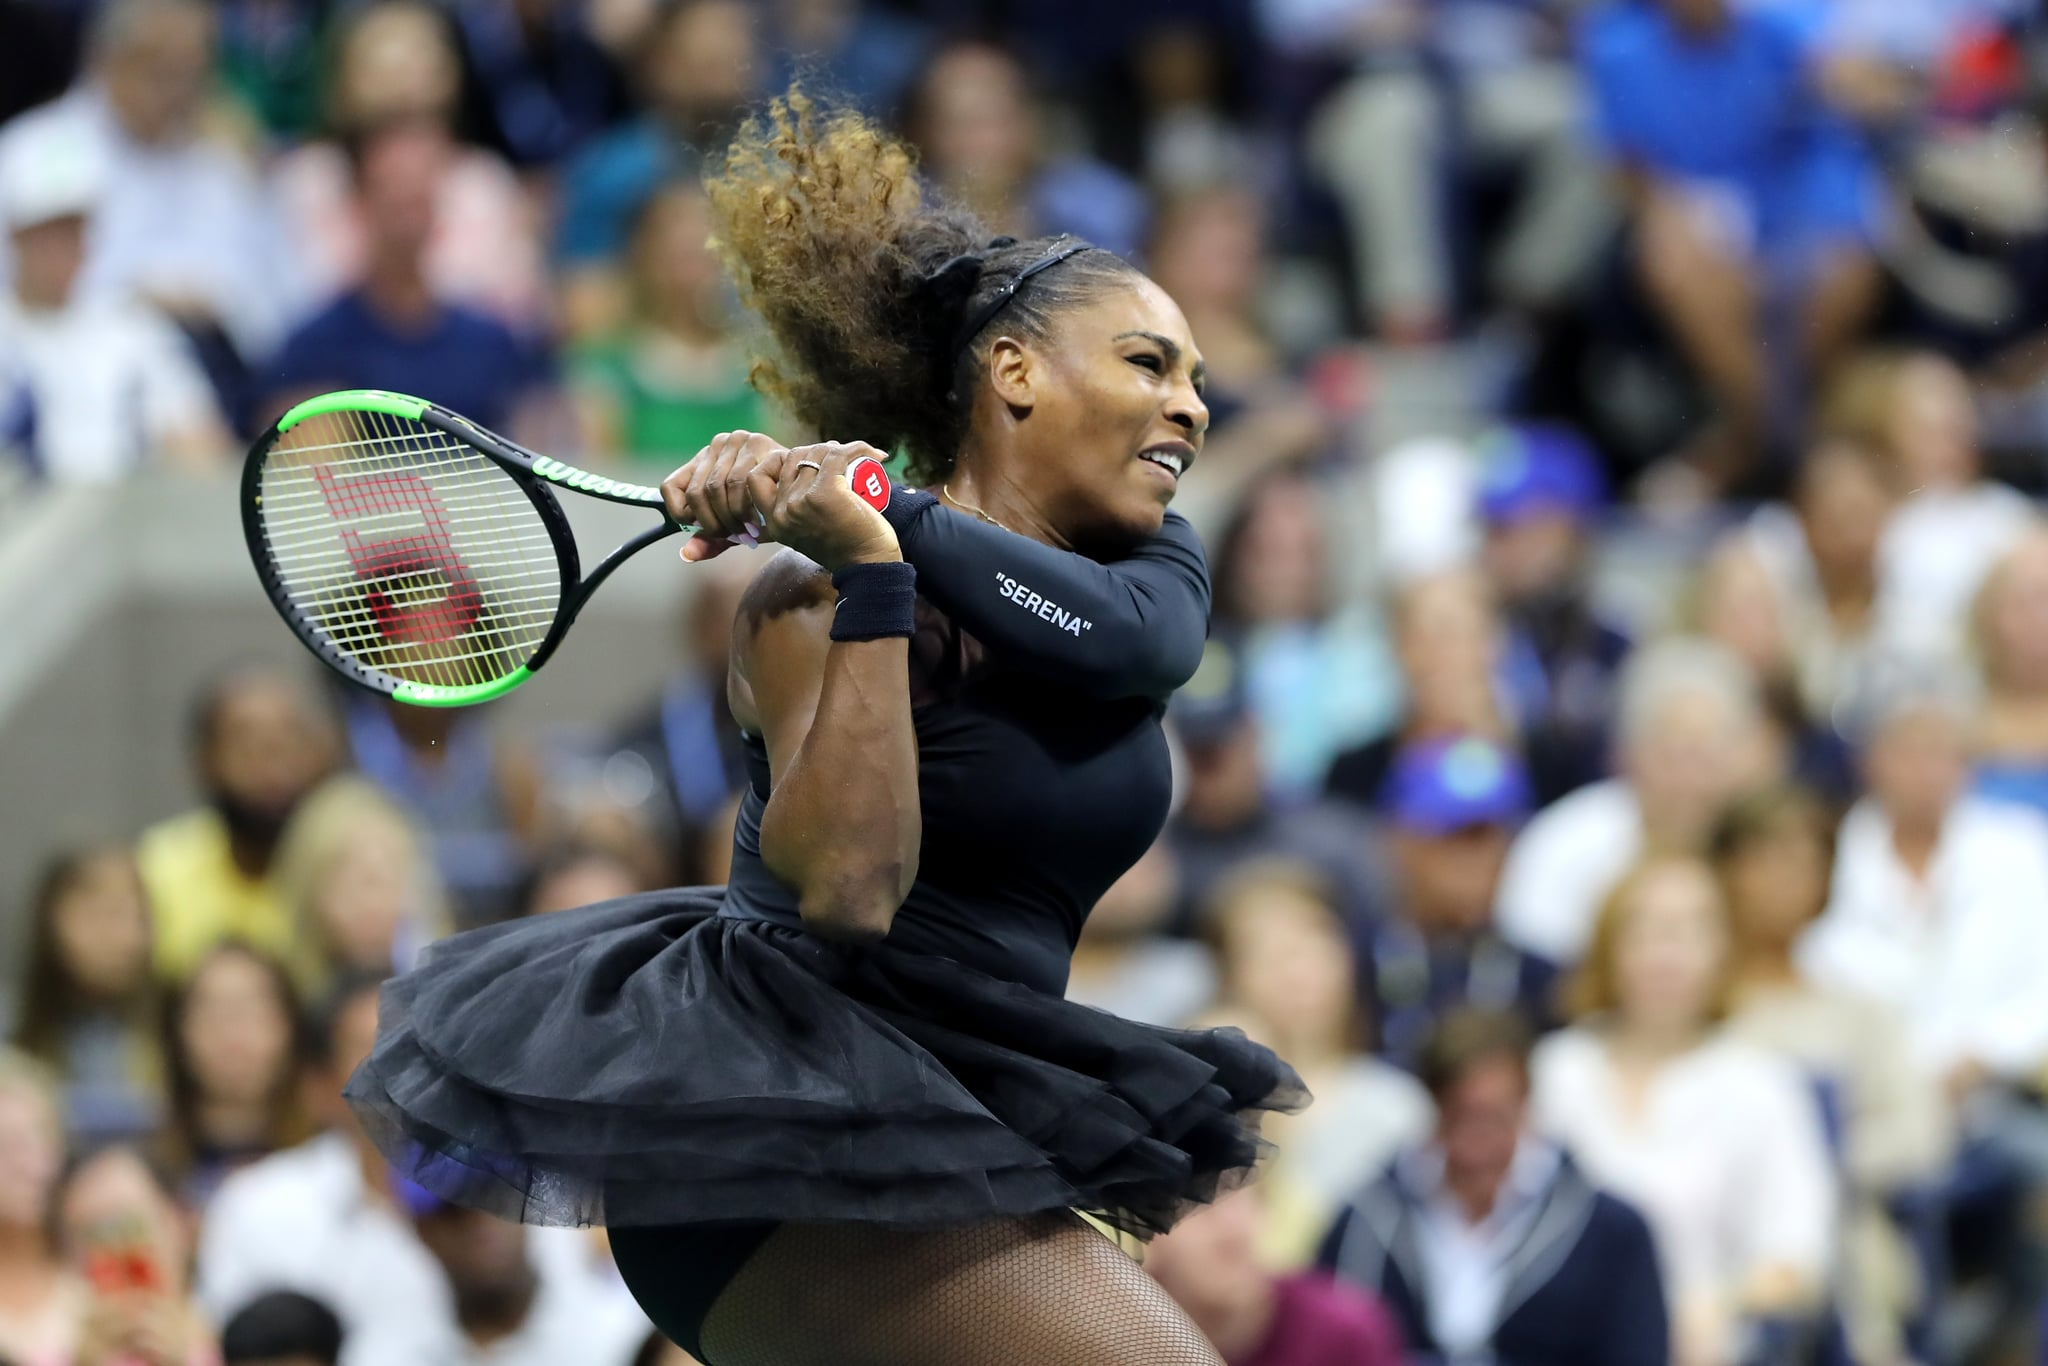 NEW YORK, NY - SEPTEMBER 08:  Serena Williams of the United States returns the ball during her Women's Singles finals match against Naomi Osaka of Japan on Day Thirteen of the 2018 US Open at the USTA Billie Jean King National Tennis Centre on September 8, 2018 in the Flushing neighbourhood of the Queens borough of New York City.  (Photo by Elsa/Getty Images)